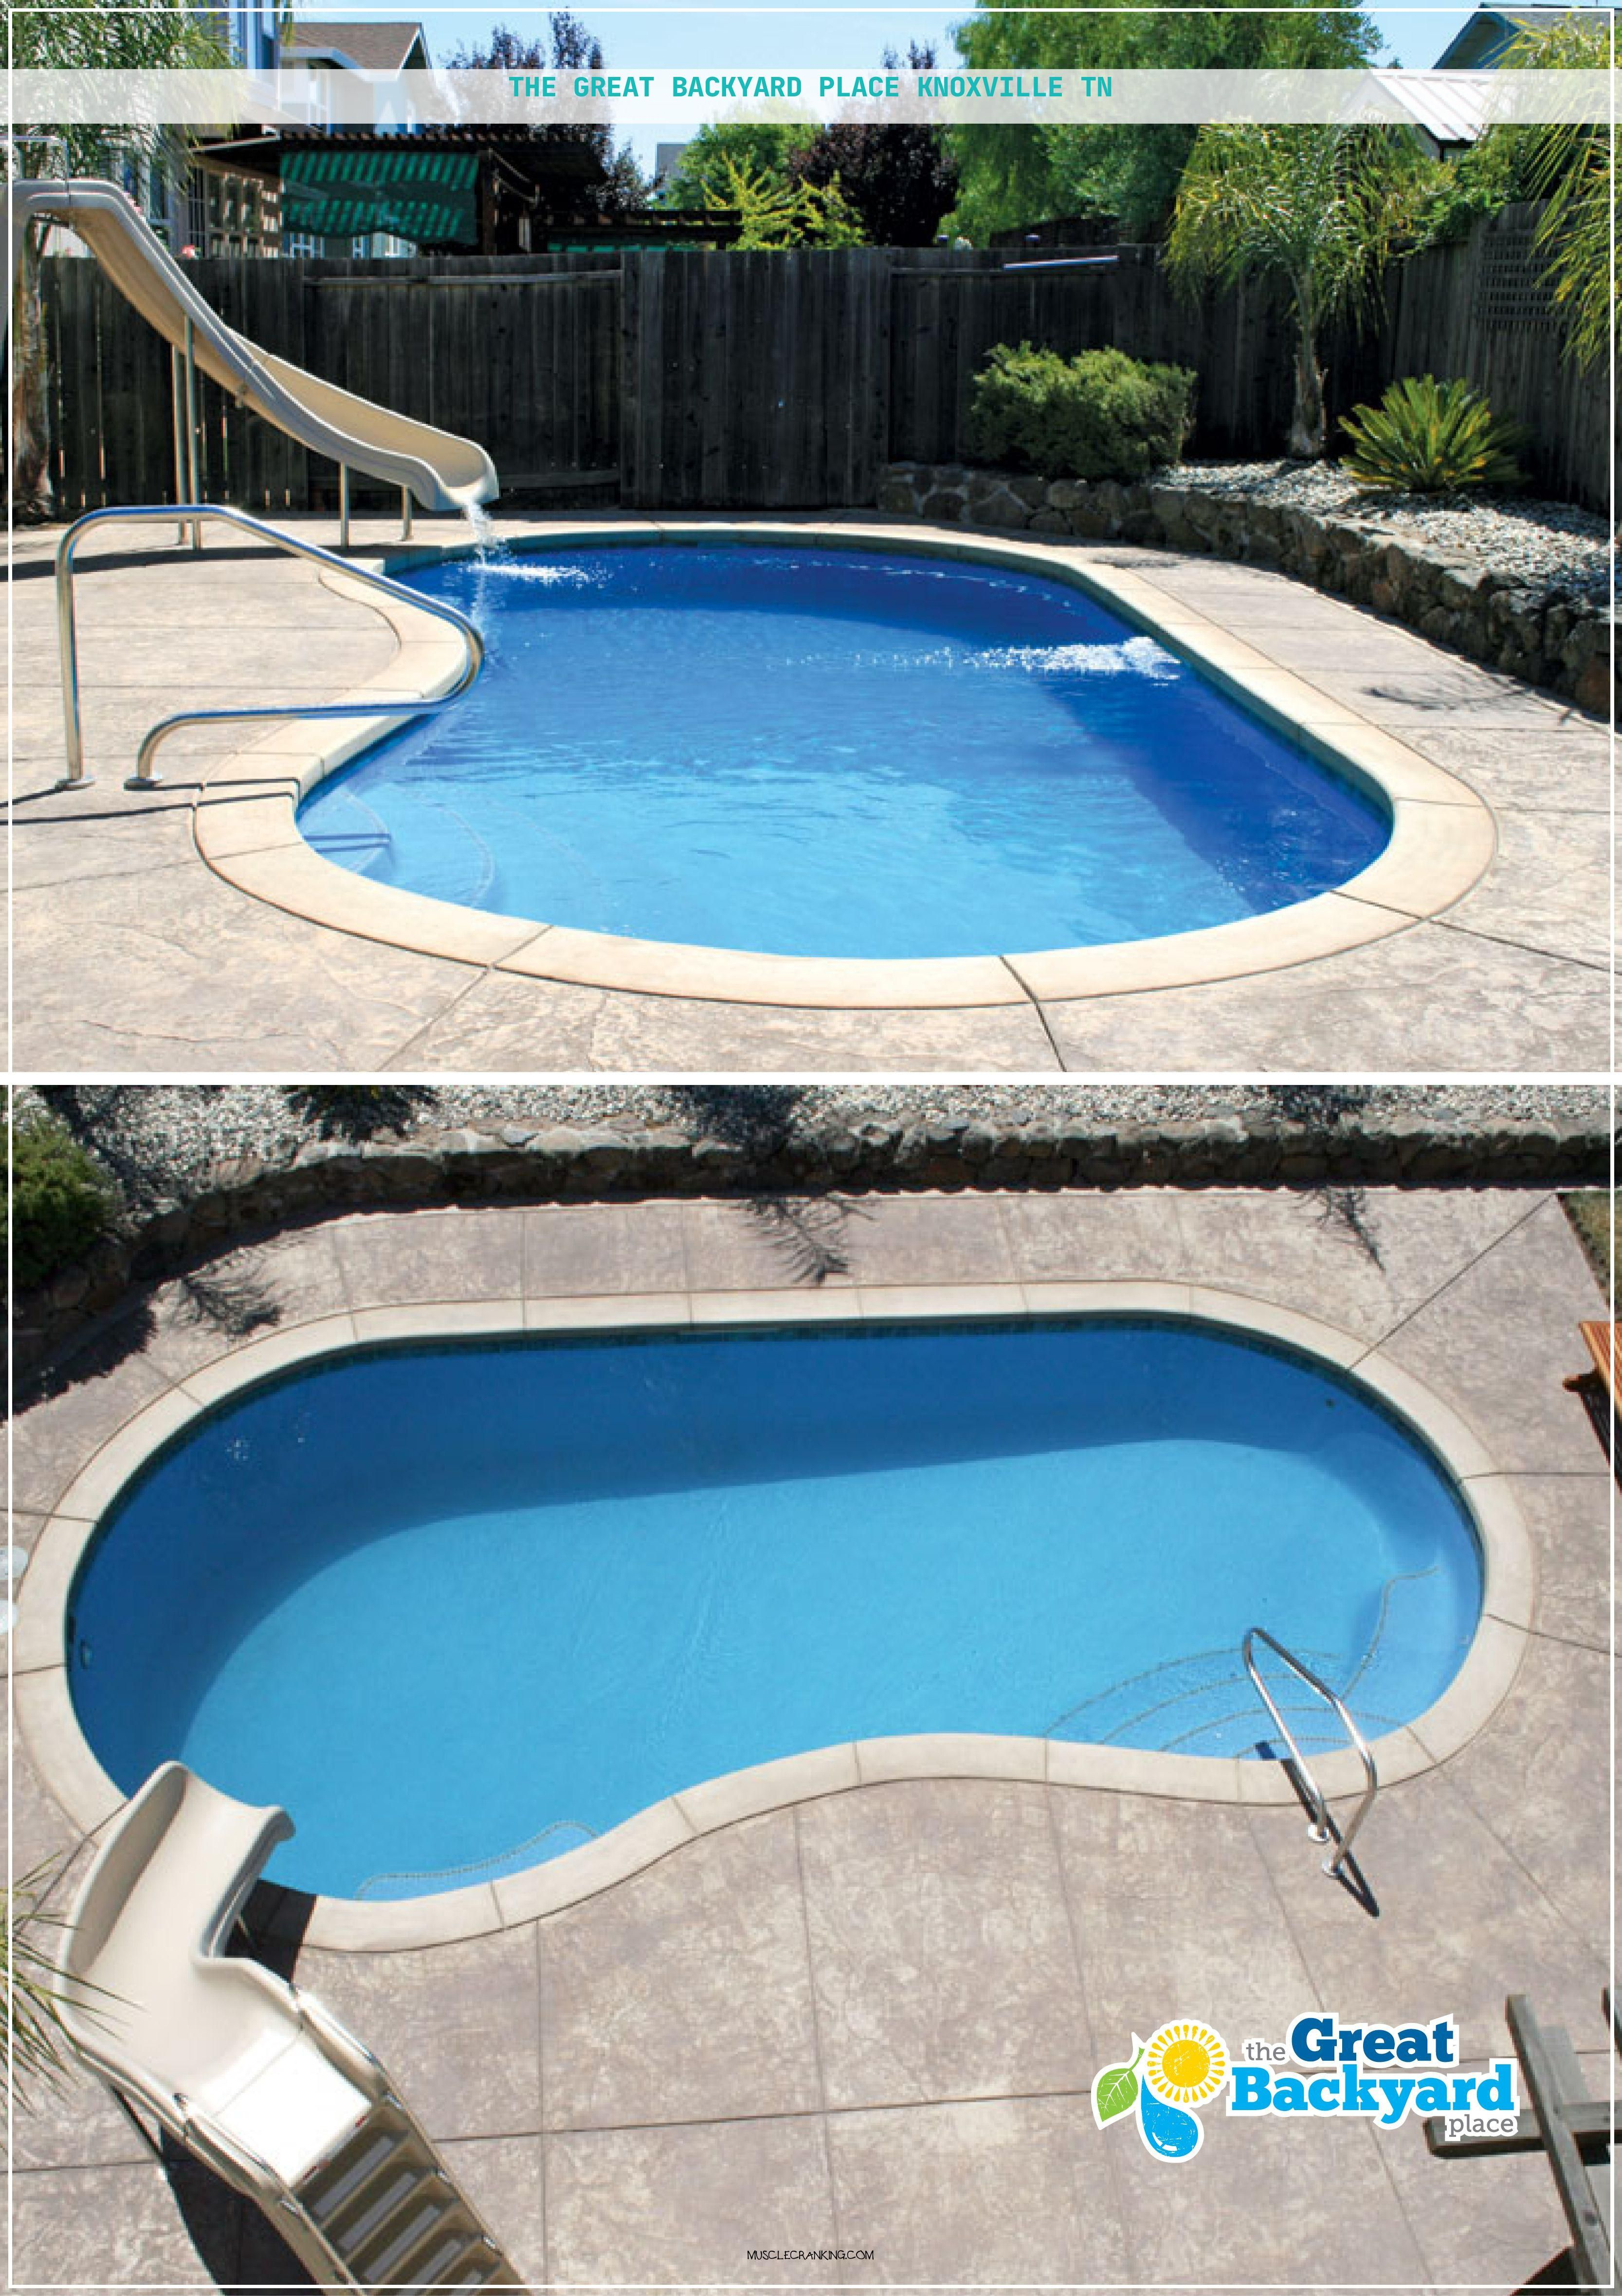 The Great Backyard Place Knoxville Tn 2021 Pools Backyard Inground Backyard Pool Swimming Pool House